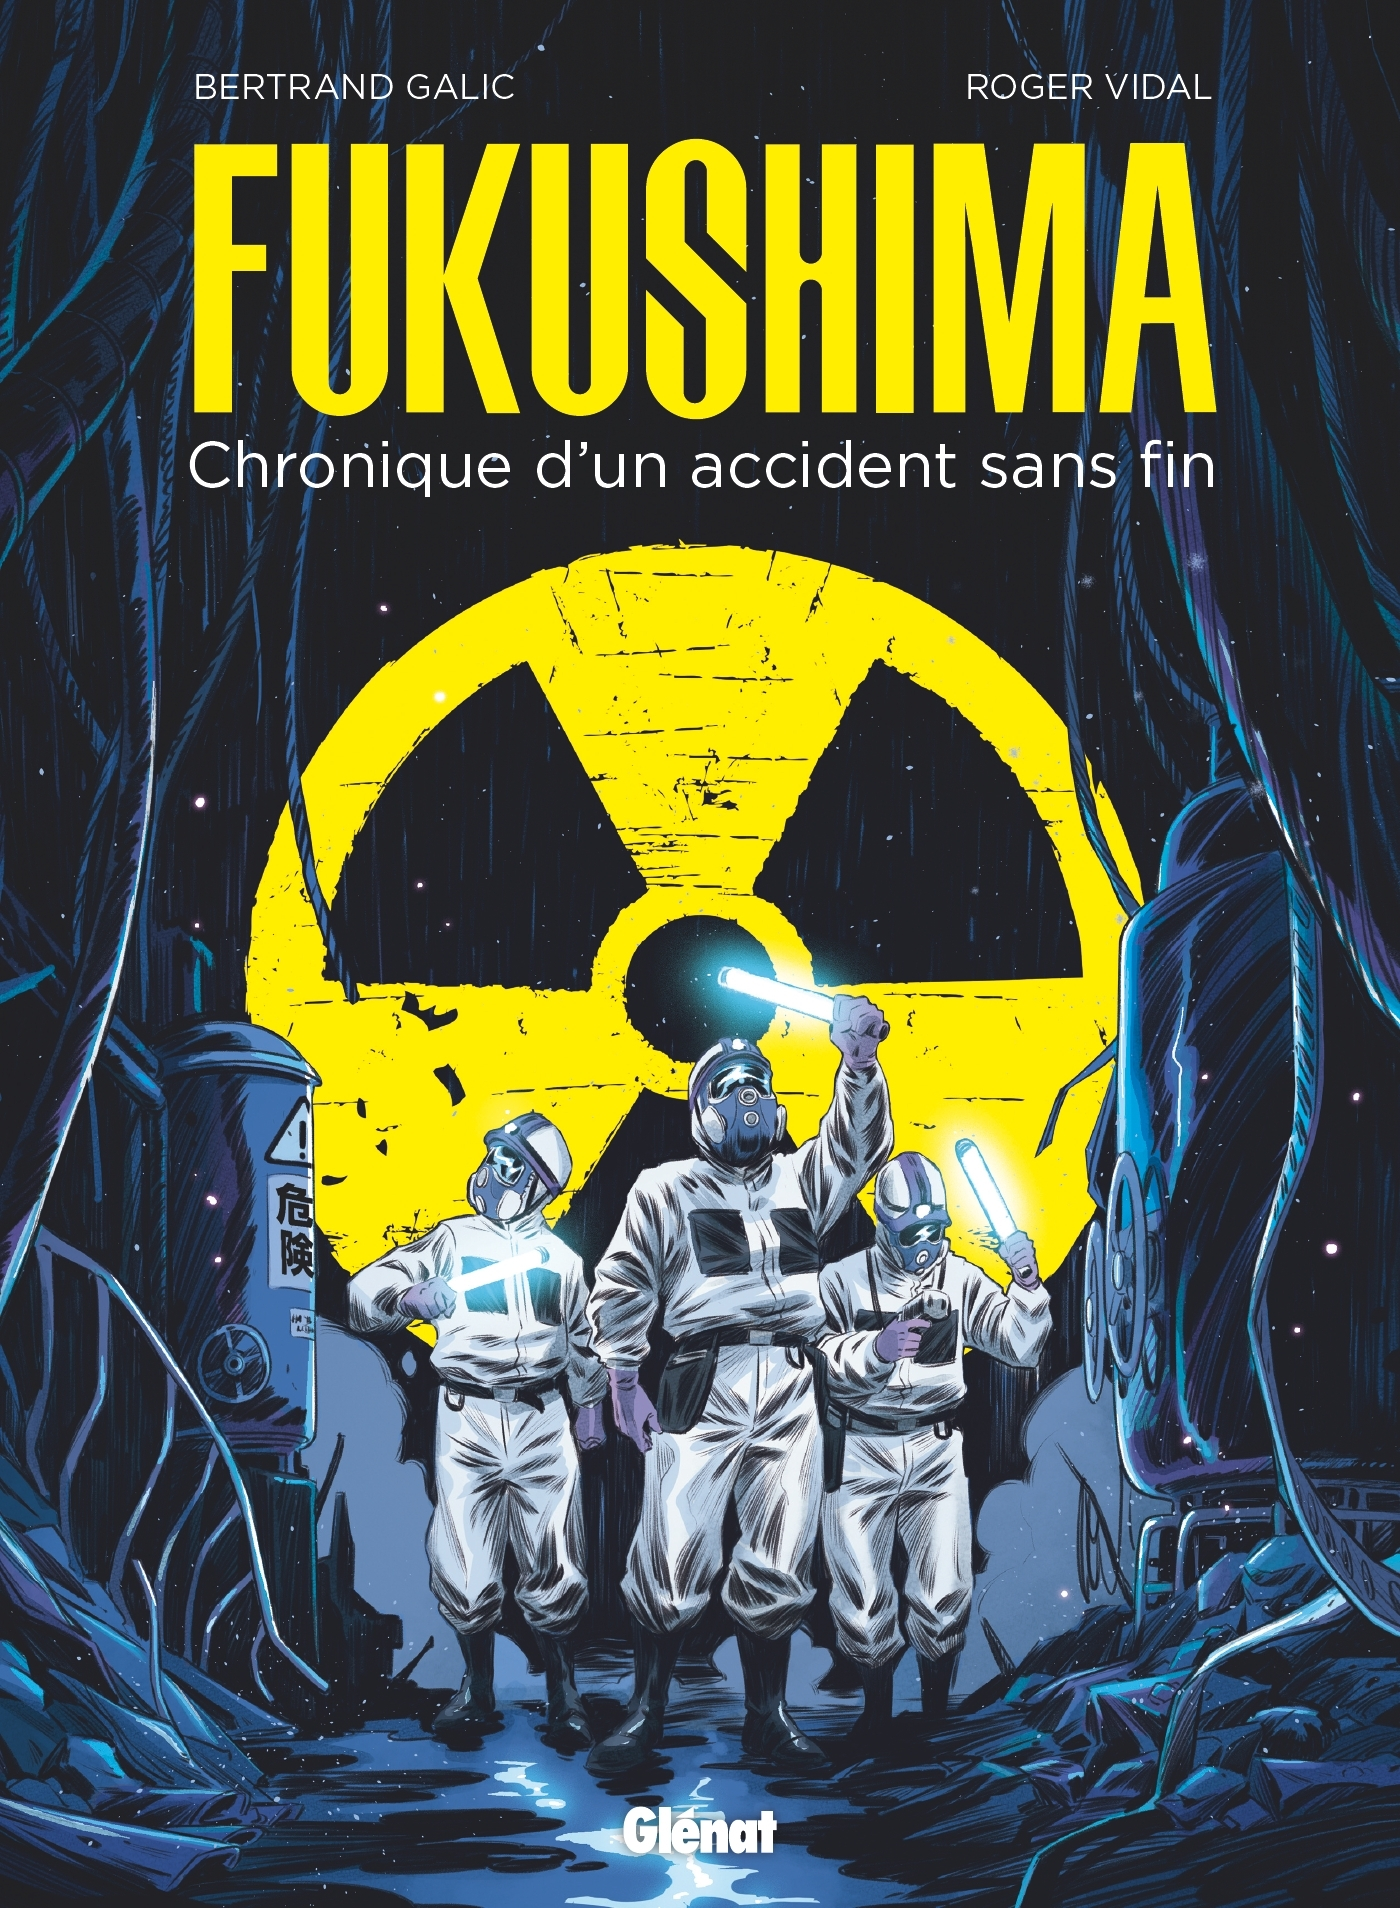 FUKUSHIMA - CHRONIQUE D'UN ACCIDENT SANS FIN